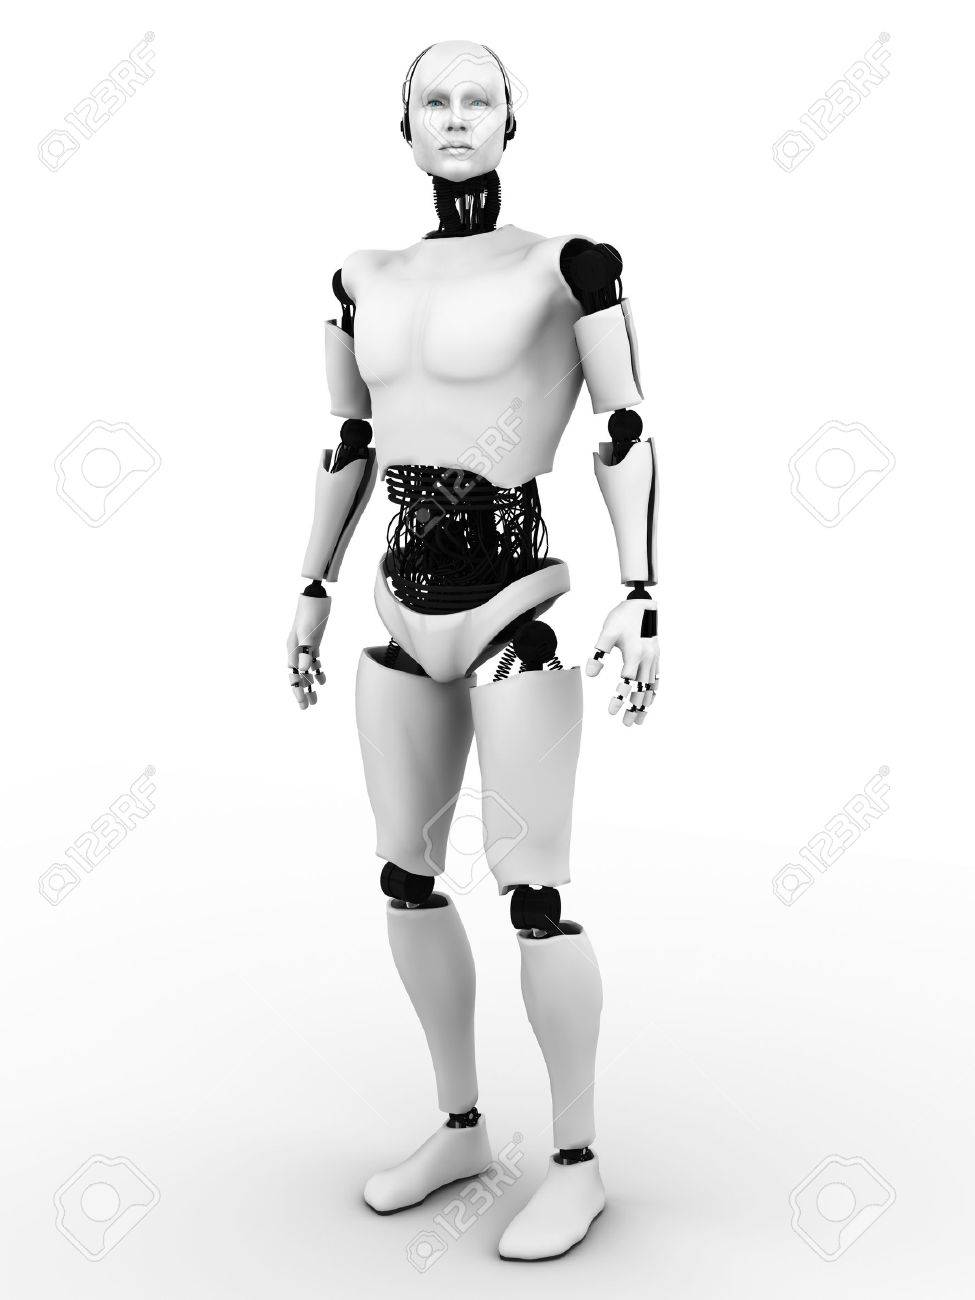 Male robot standing. White background. Stock Photo - 15093137